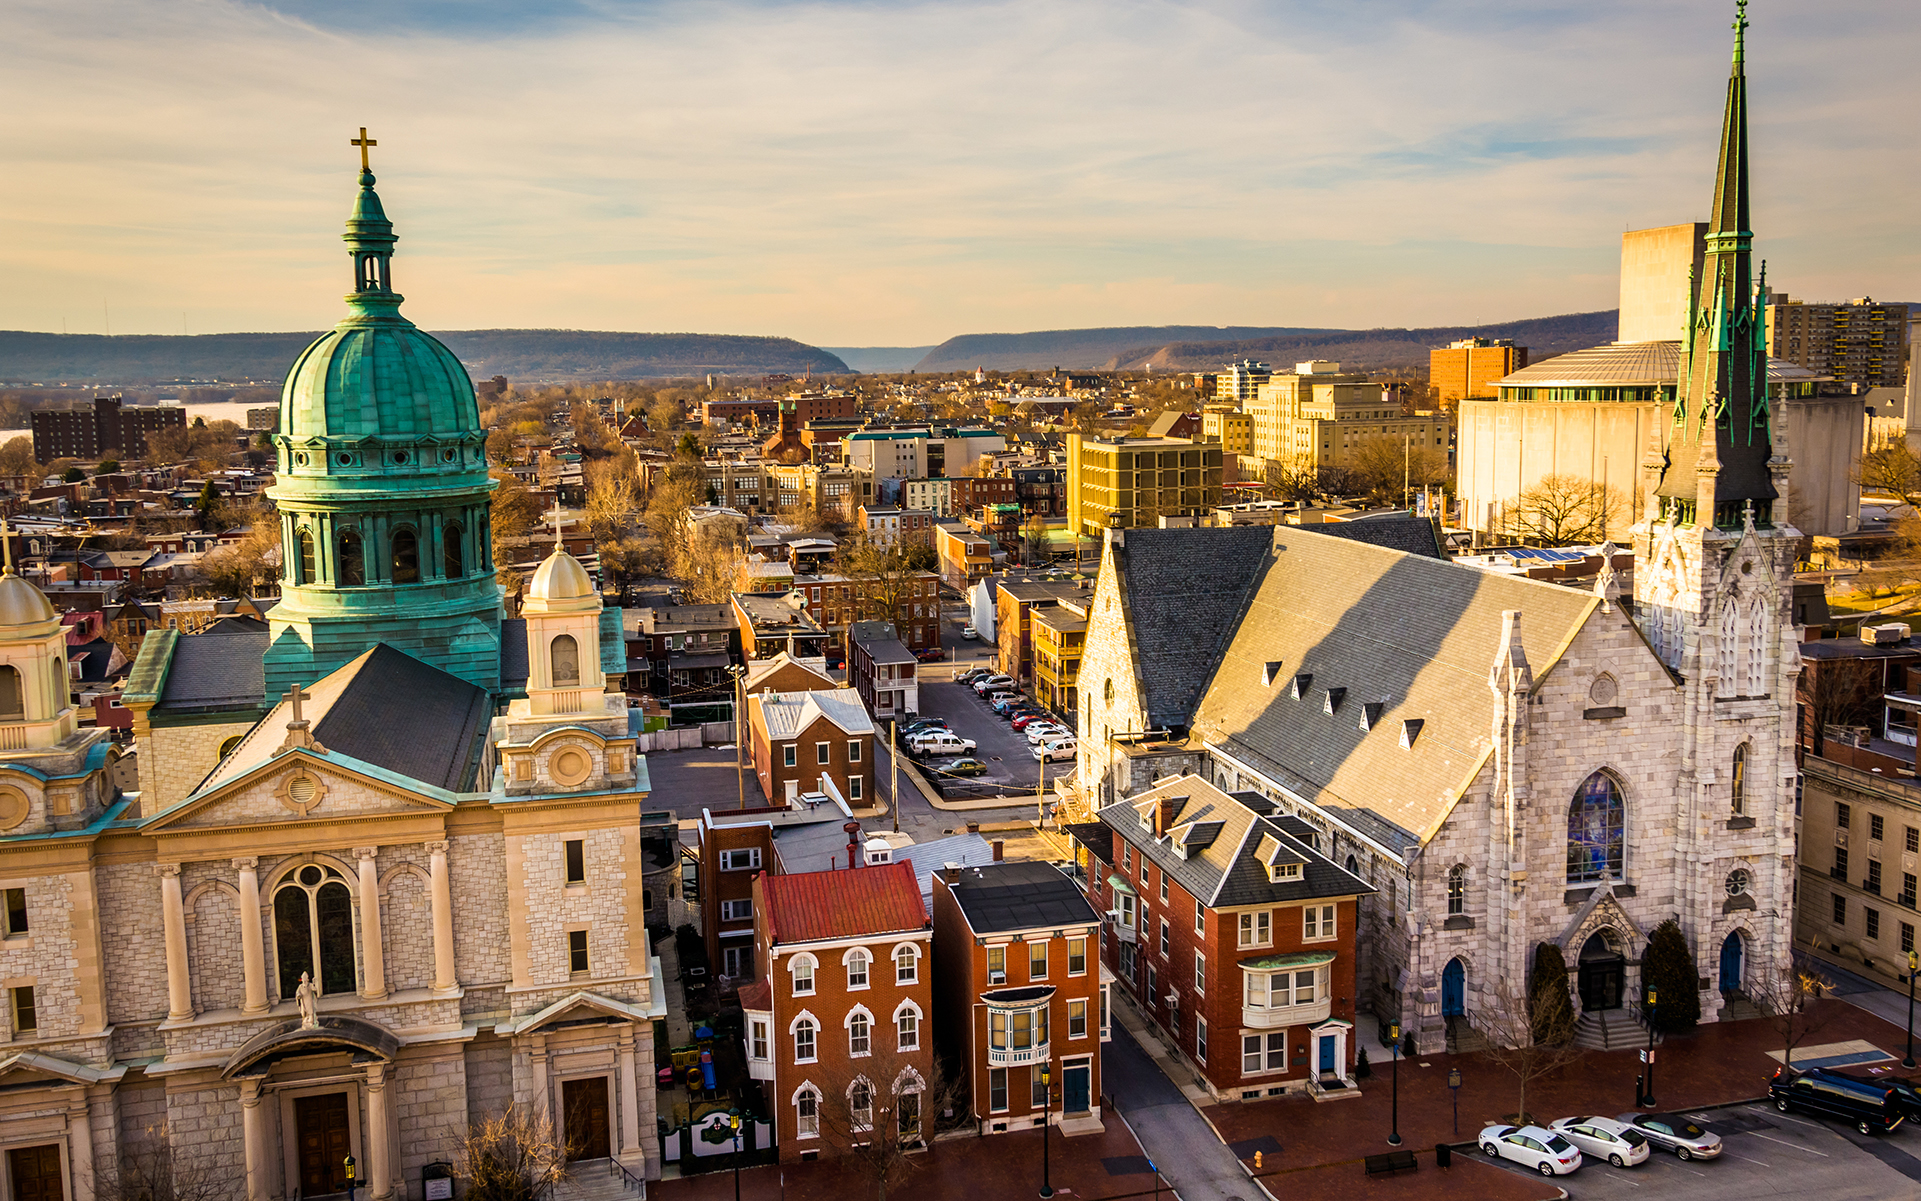 The churches and neighborhoods seen from the South Street Parking Garage in Harrisburg, Pennsylvania.